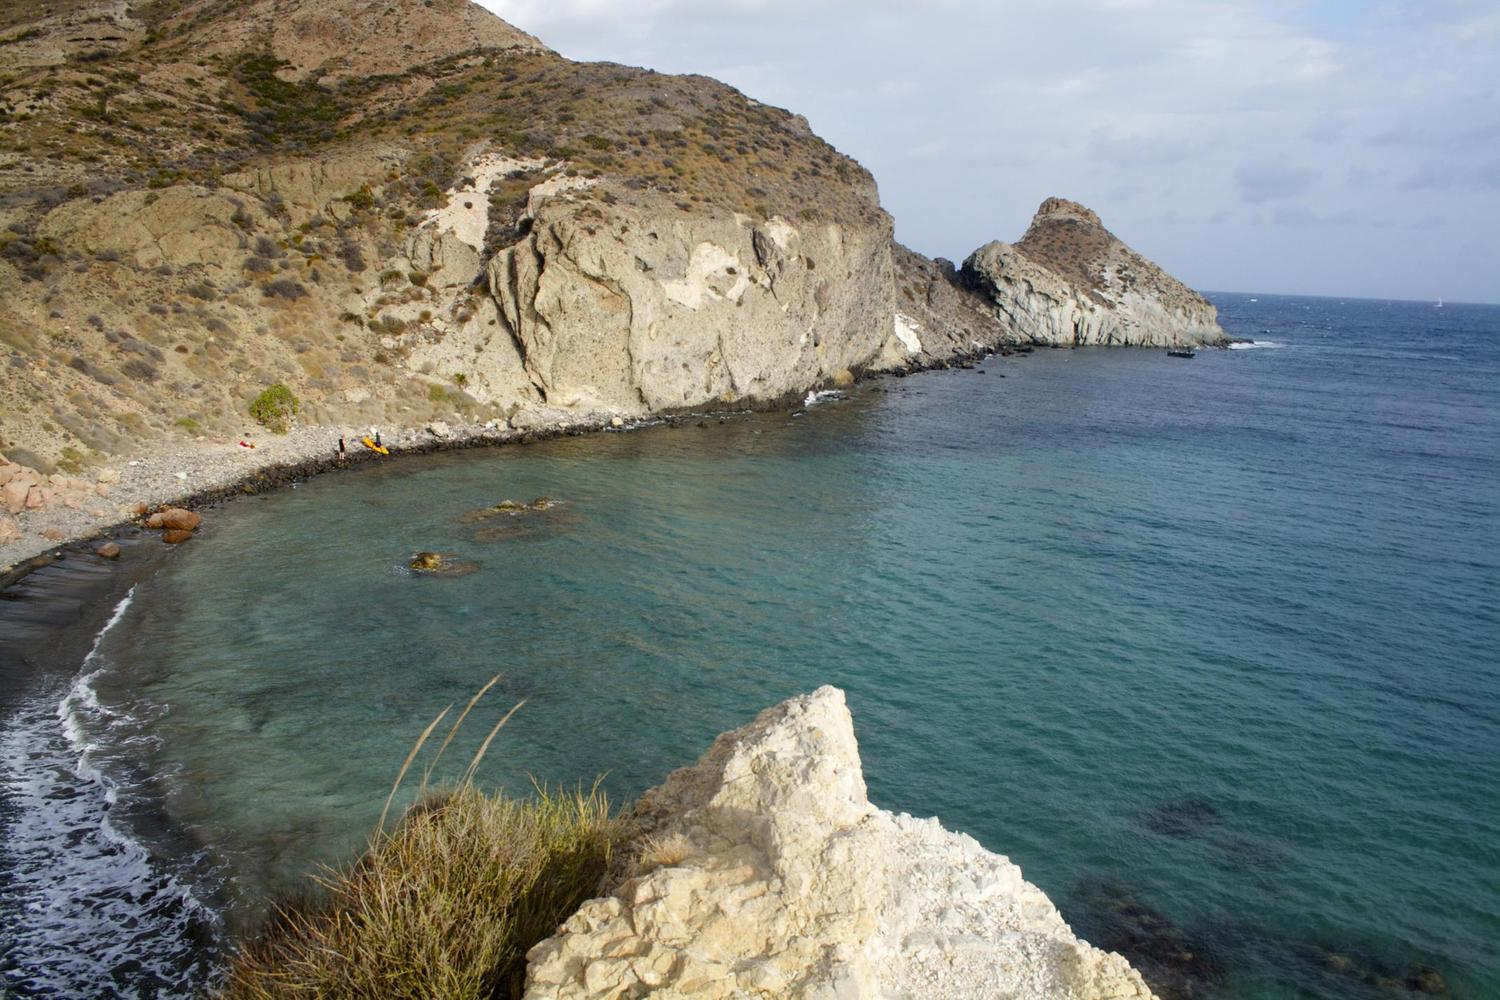 The protected marine reserve of Cabo de Gata